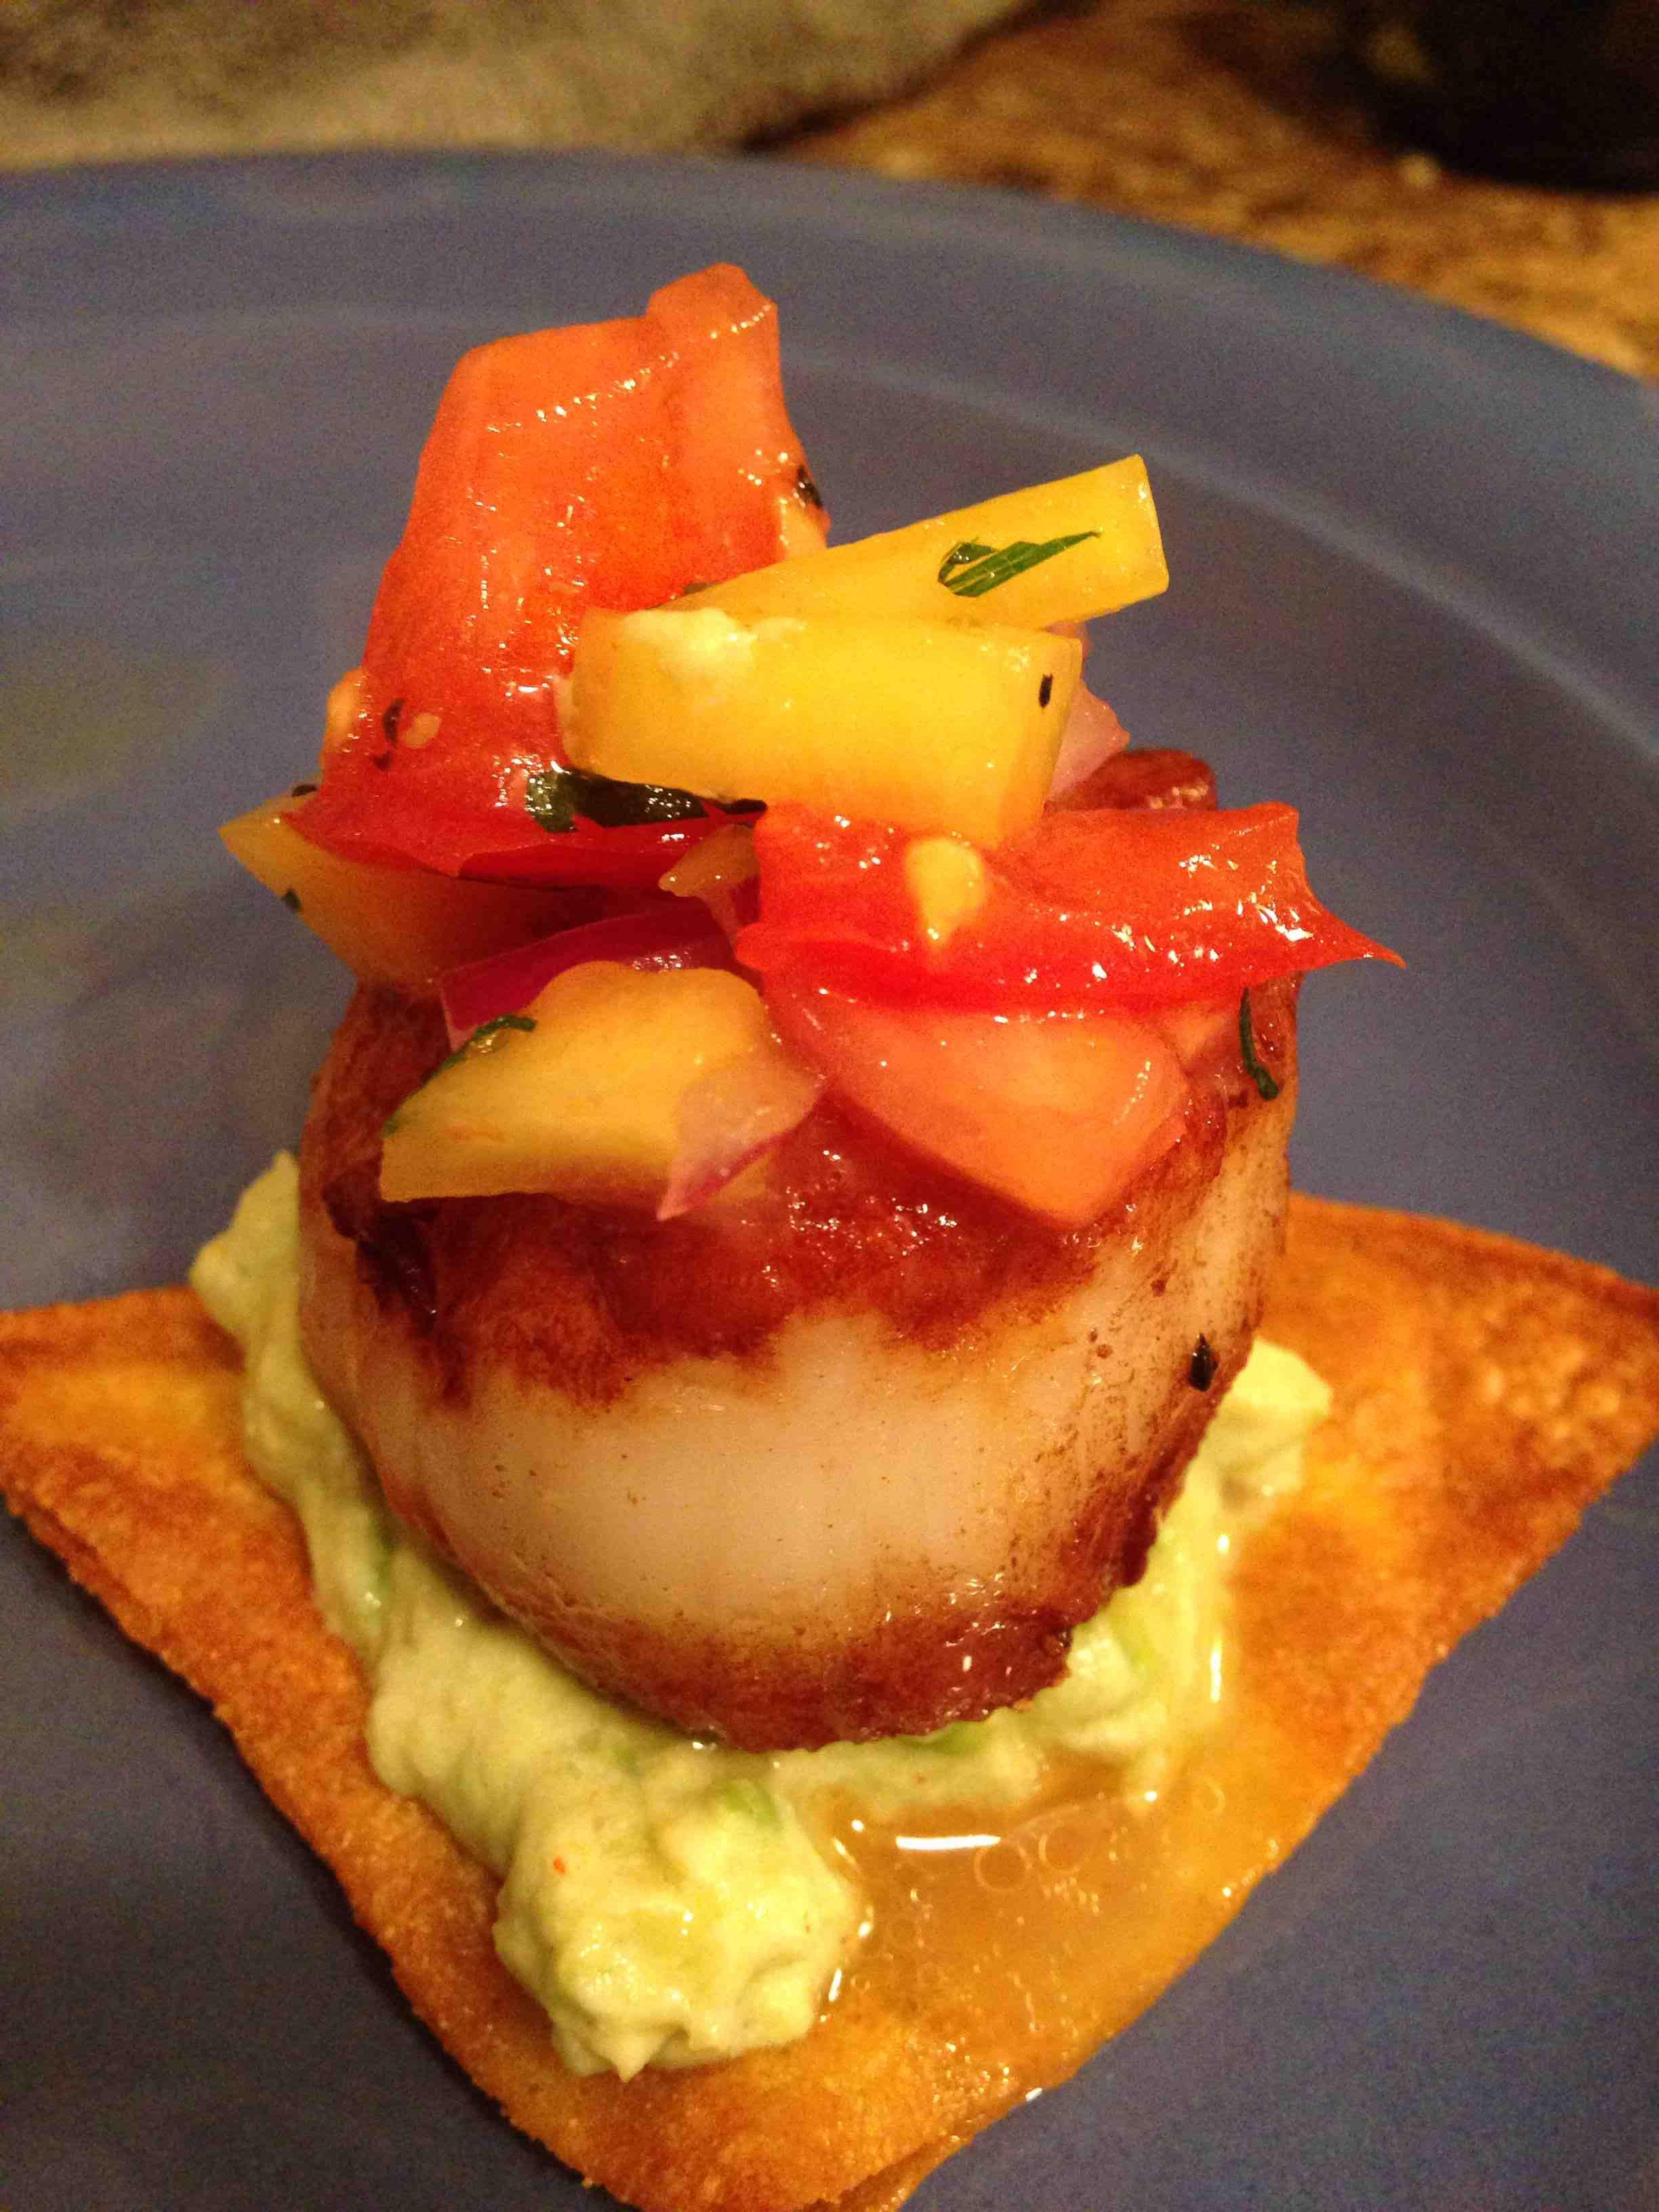 Great Summer Scallops with Avocado Cream and SalsaBIG TEXAS HOMEBUYERS